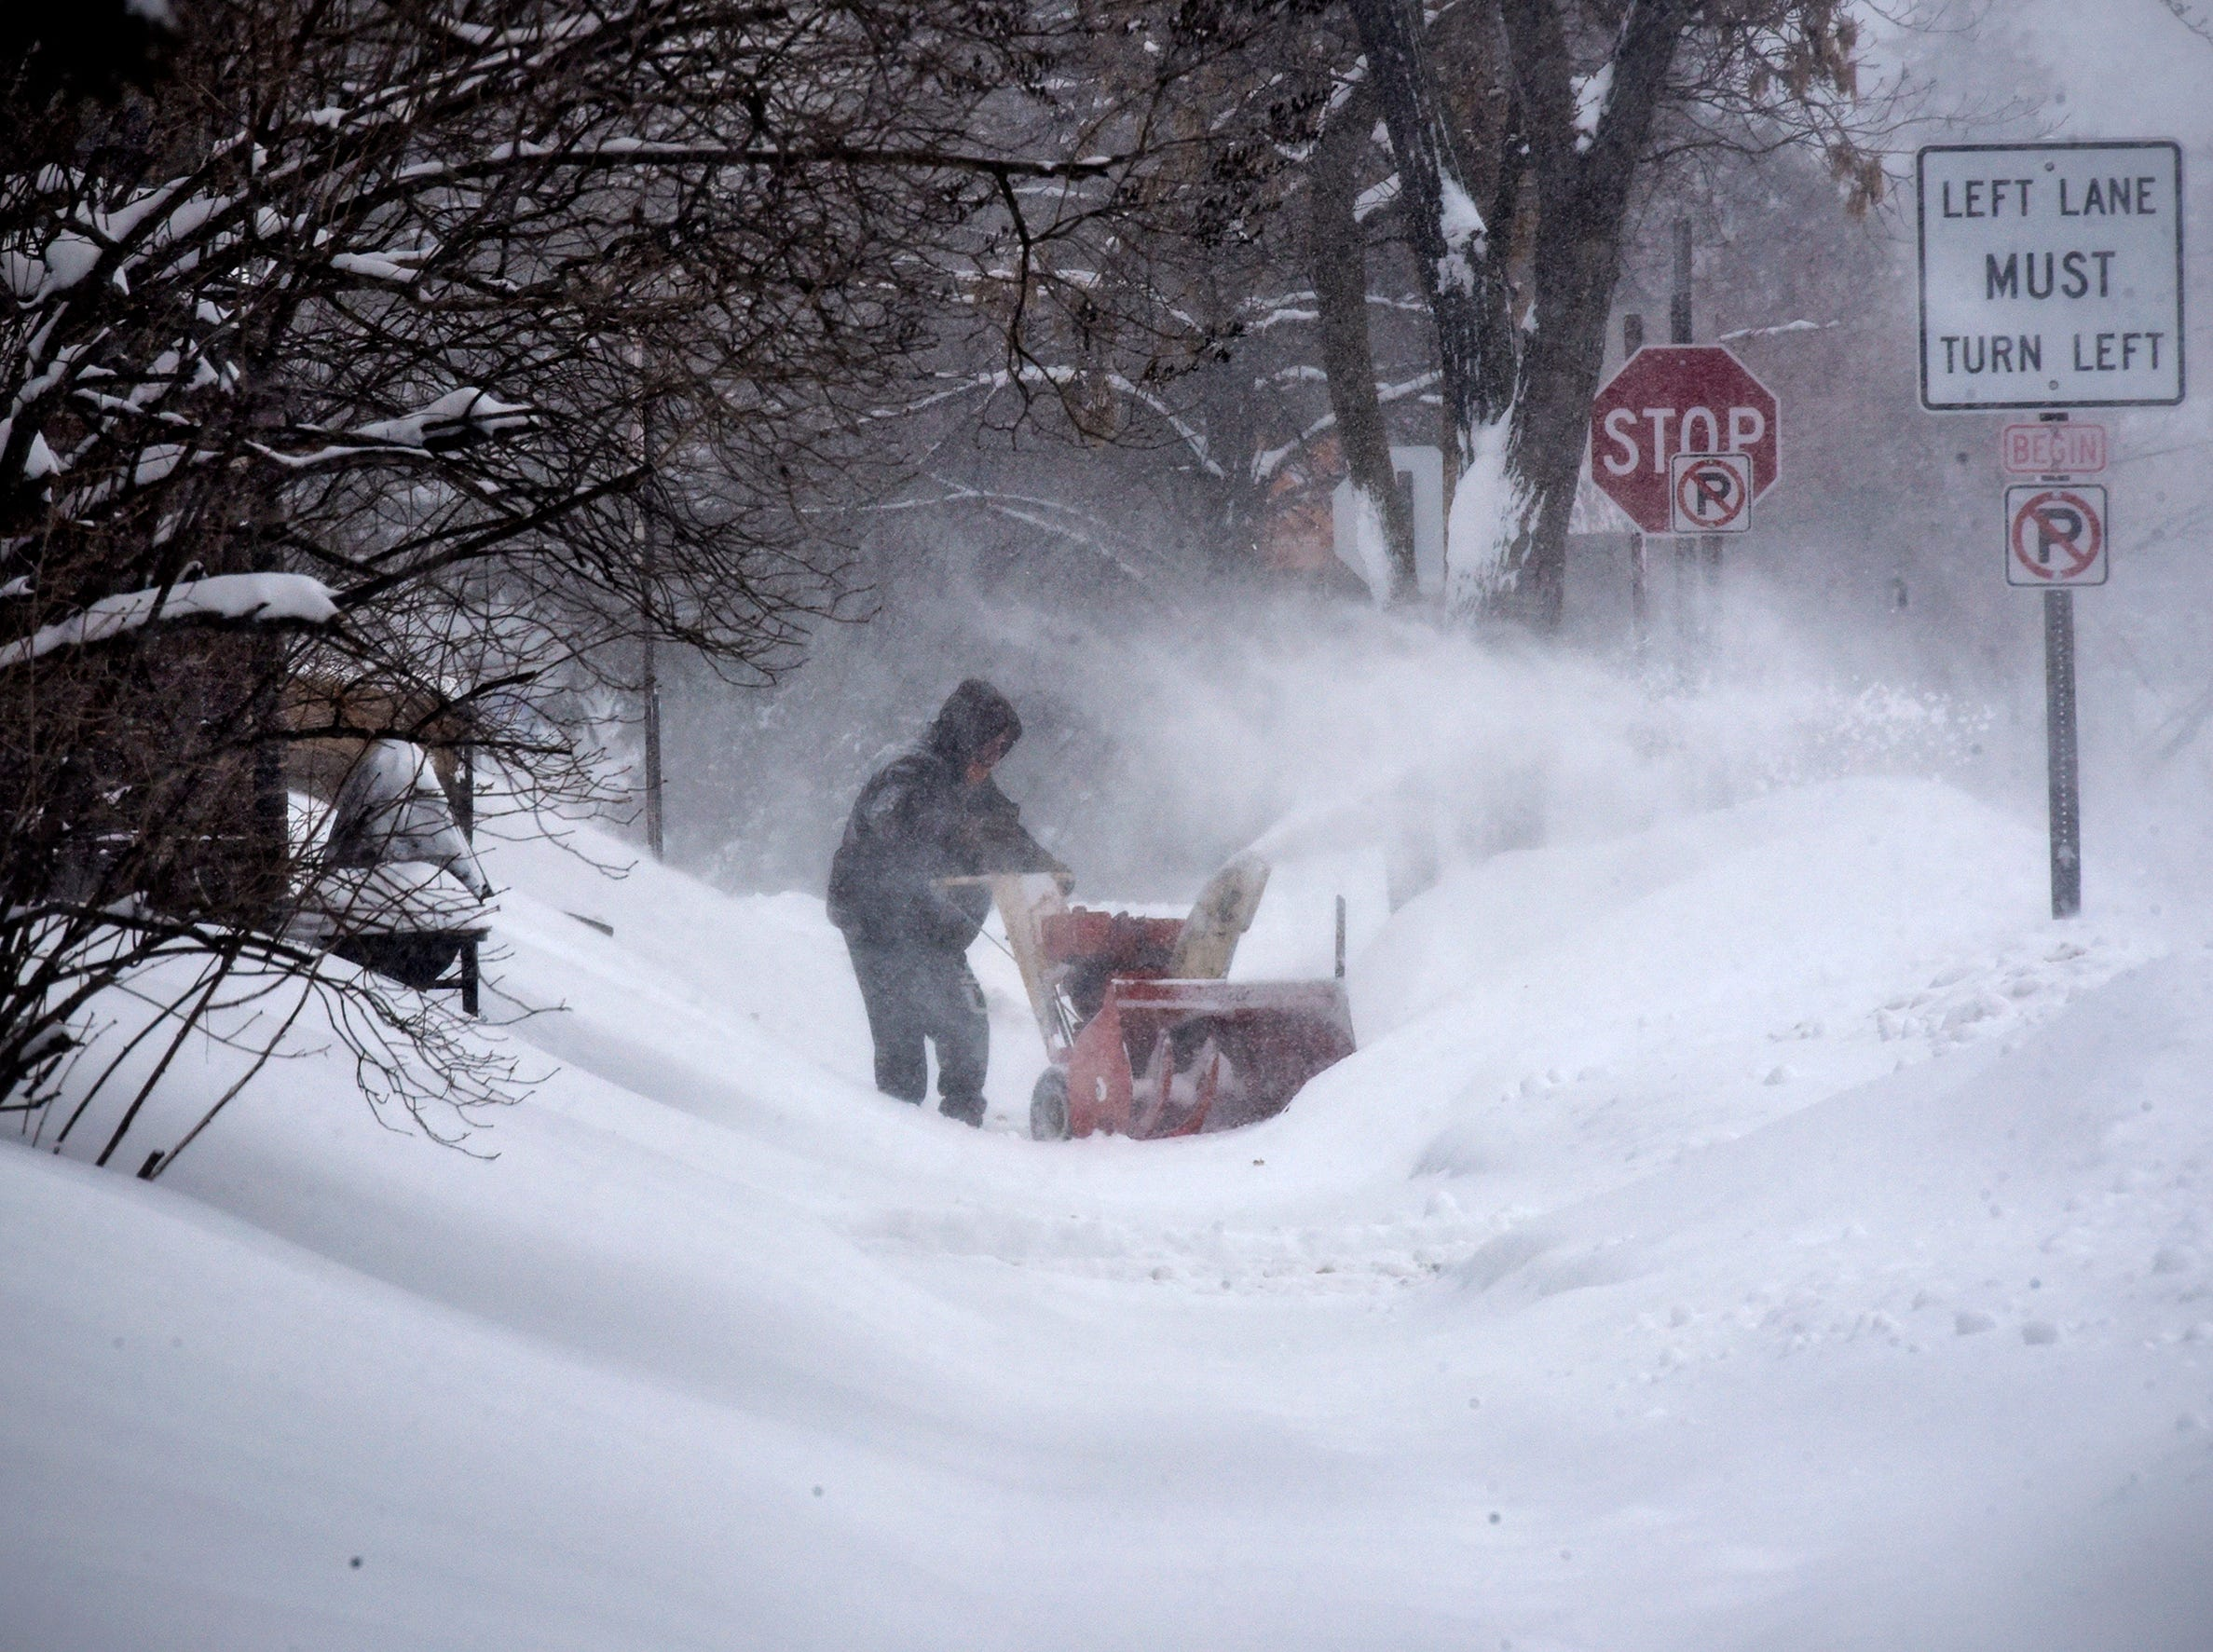 A resident clears a driveway as heavy snow continues to fall on Feb. 7, 2019, in St. Cloud, Minn.